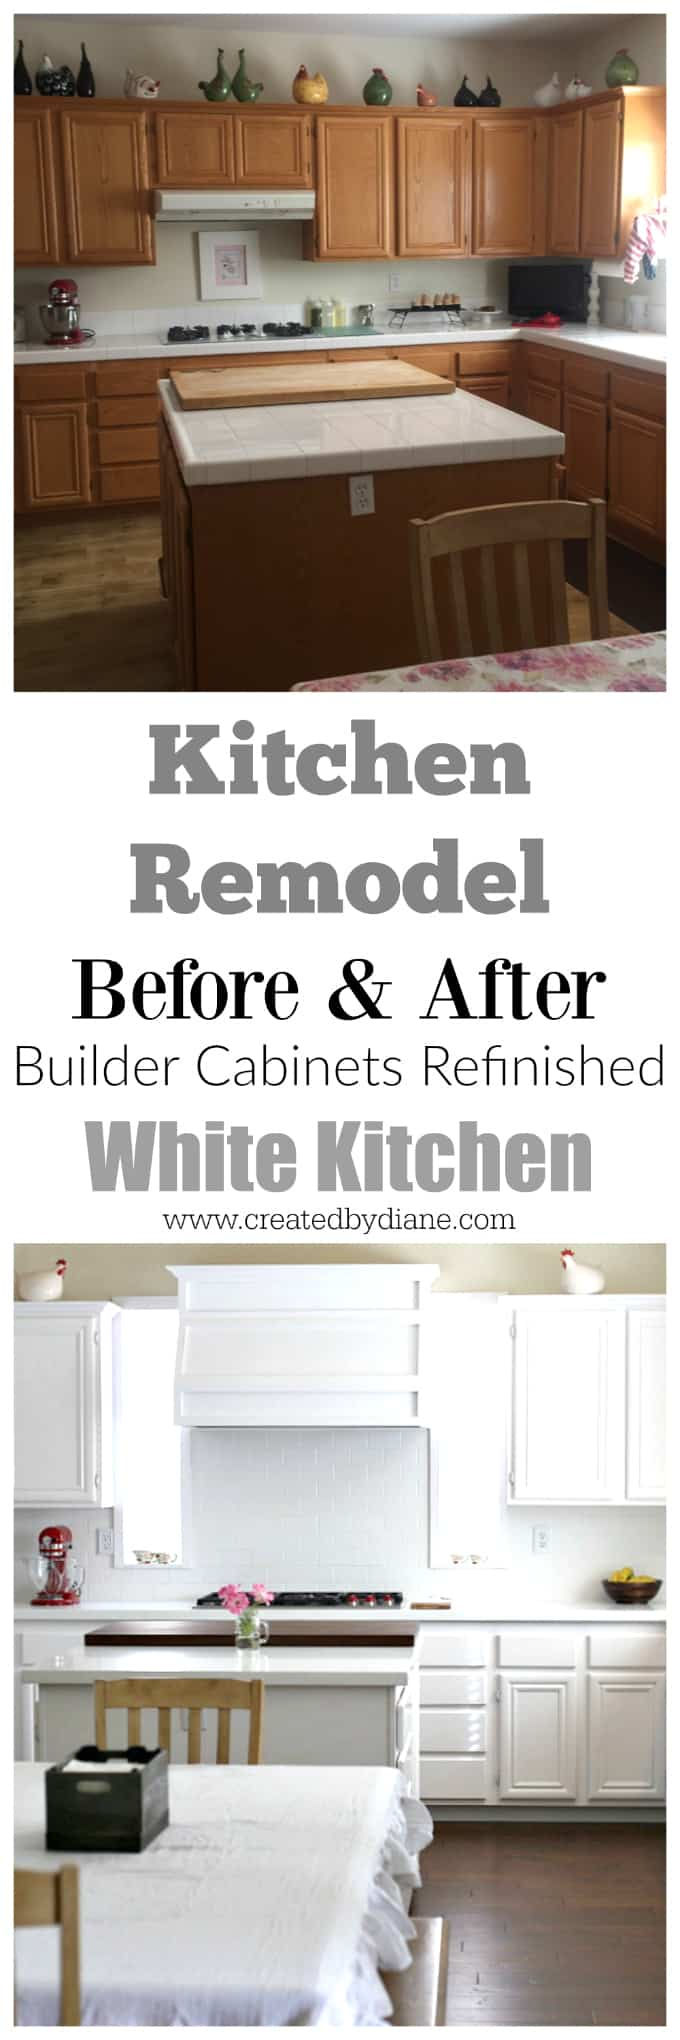 kitchen remodel before and after kitchen cabinets, wood floors, builder cabinets, white hood, white kitchen, DIY kitchen renovation, painted kitchen cabinets www.createdbydiane.com